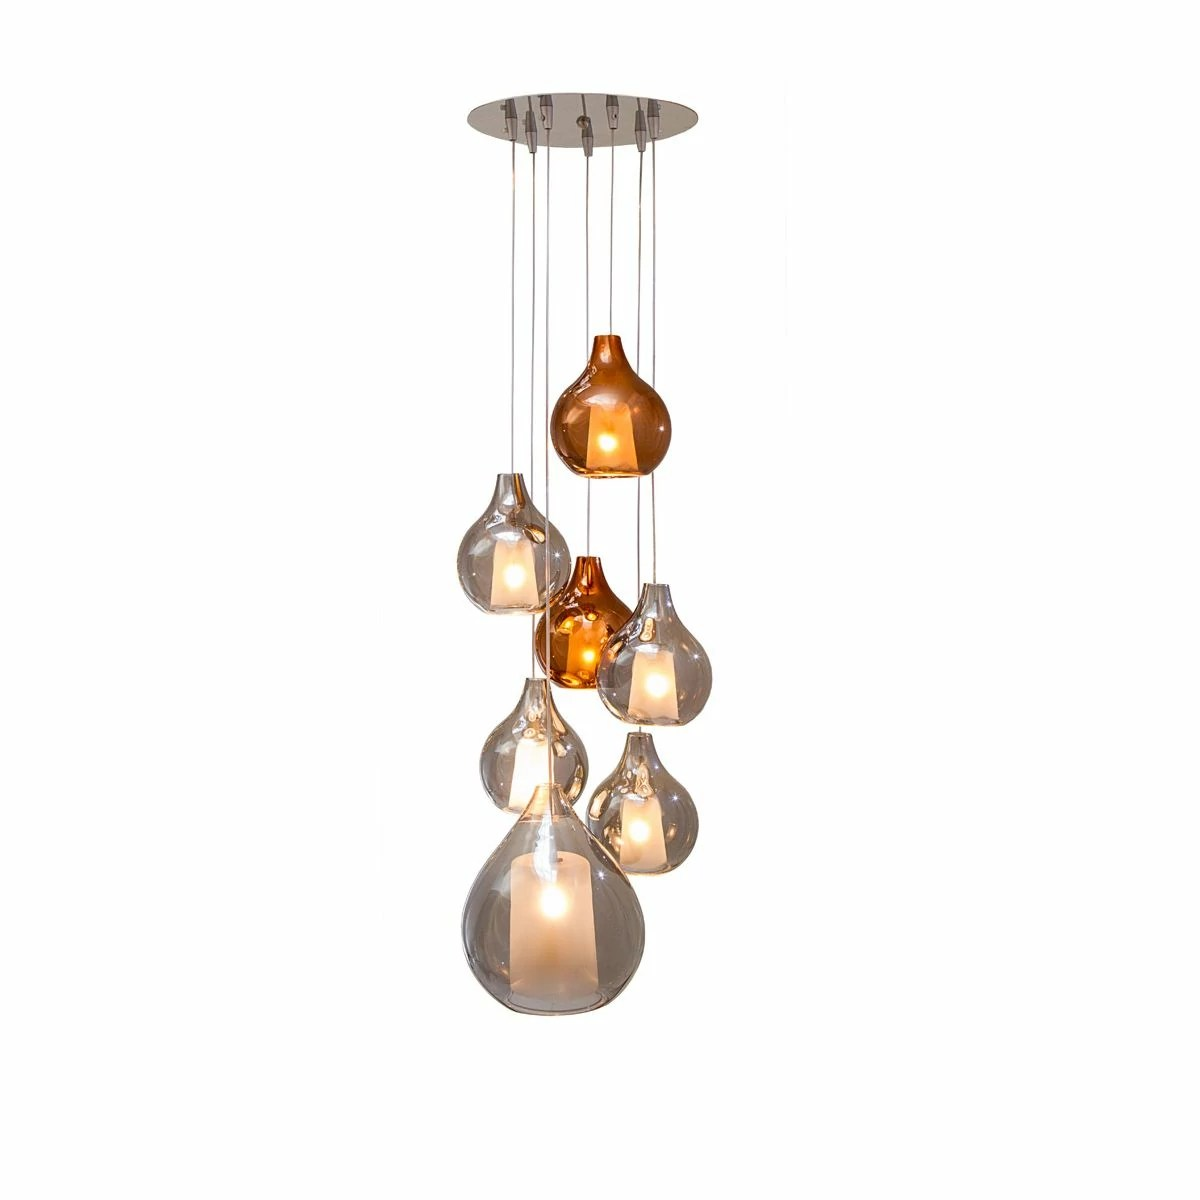 Suspension Design En Verre Lampe Suspension Circé 7 Concept Verre